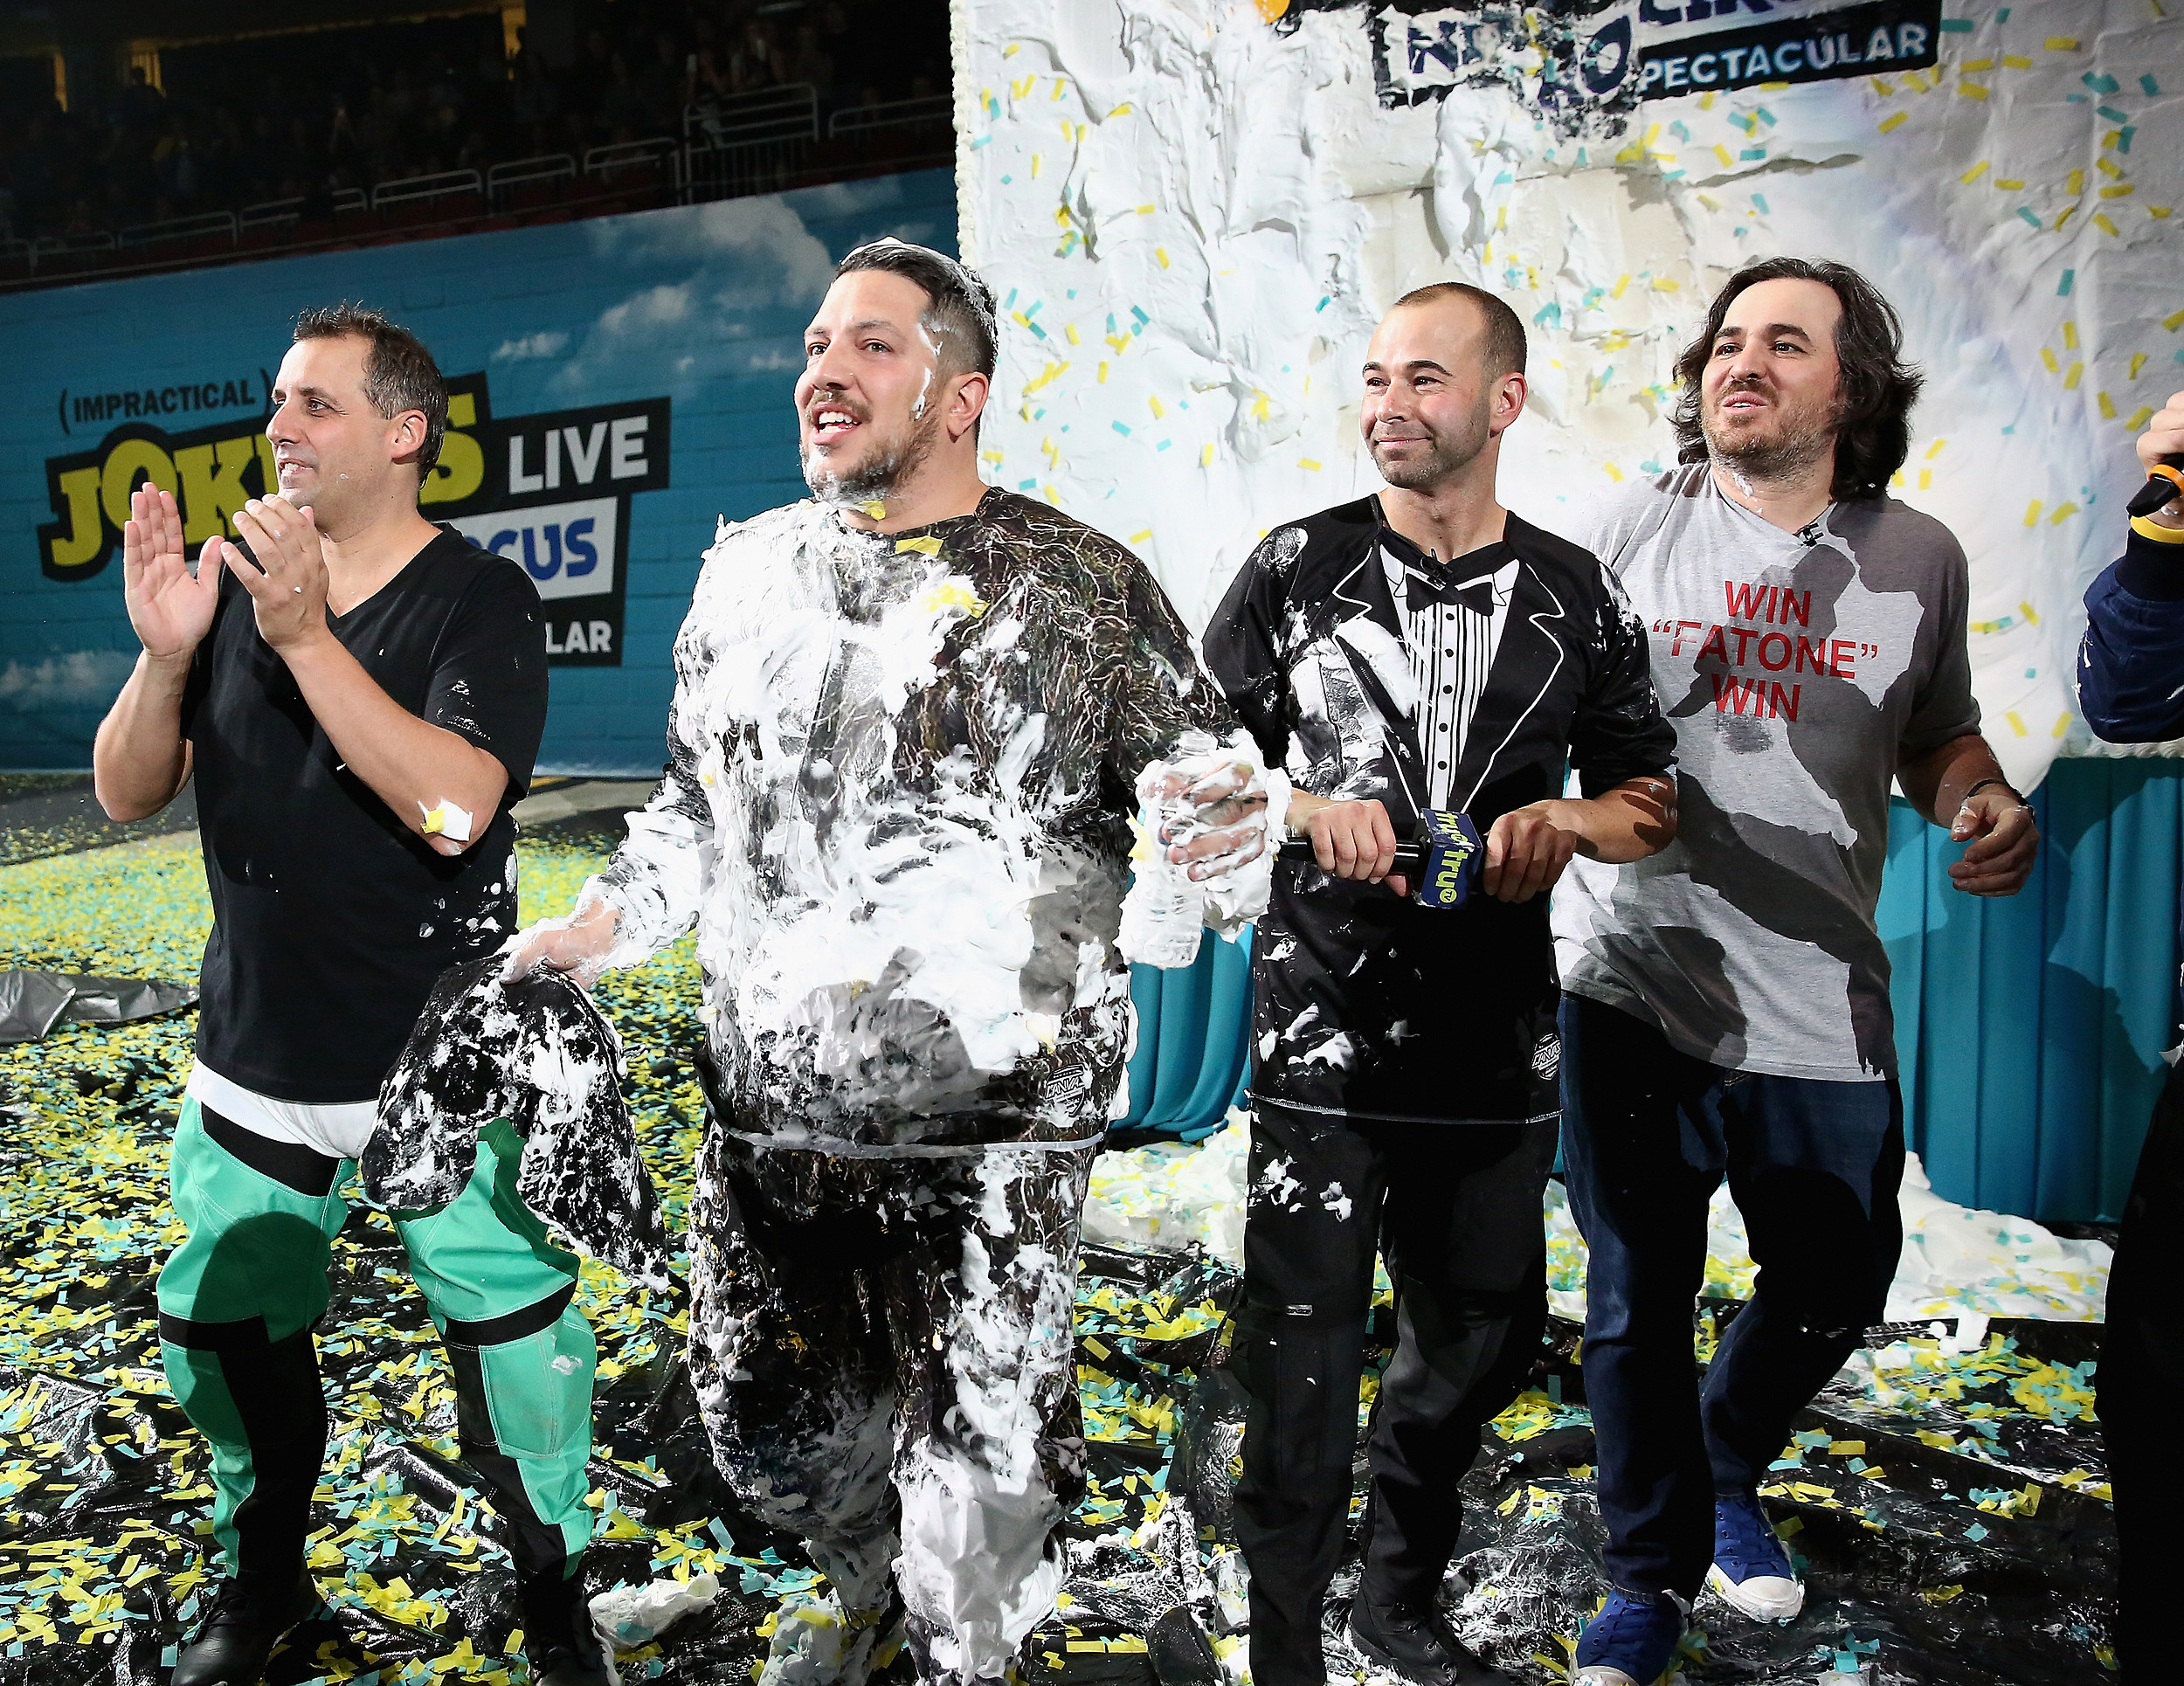 The Impractical Jokers Are Coming To The Minnesota State Fair